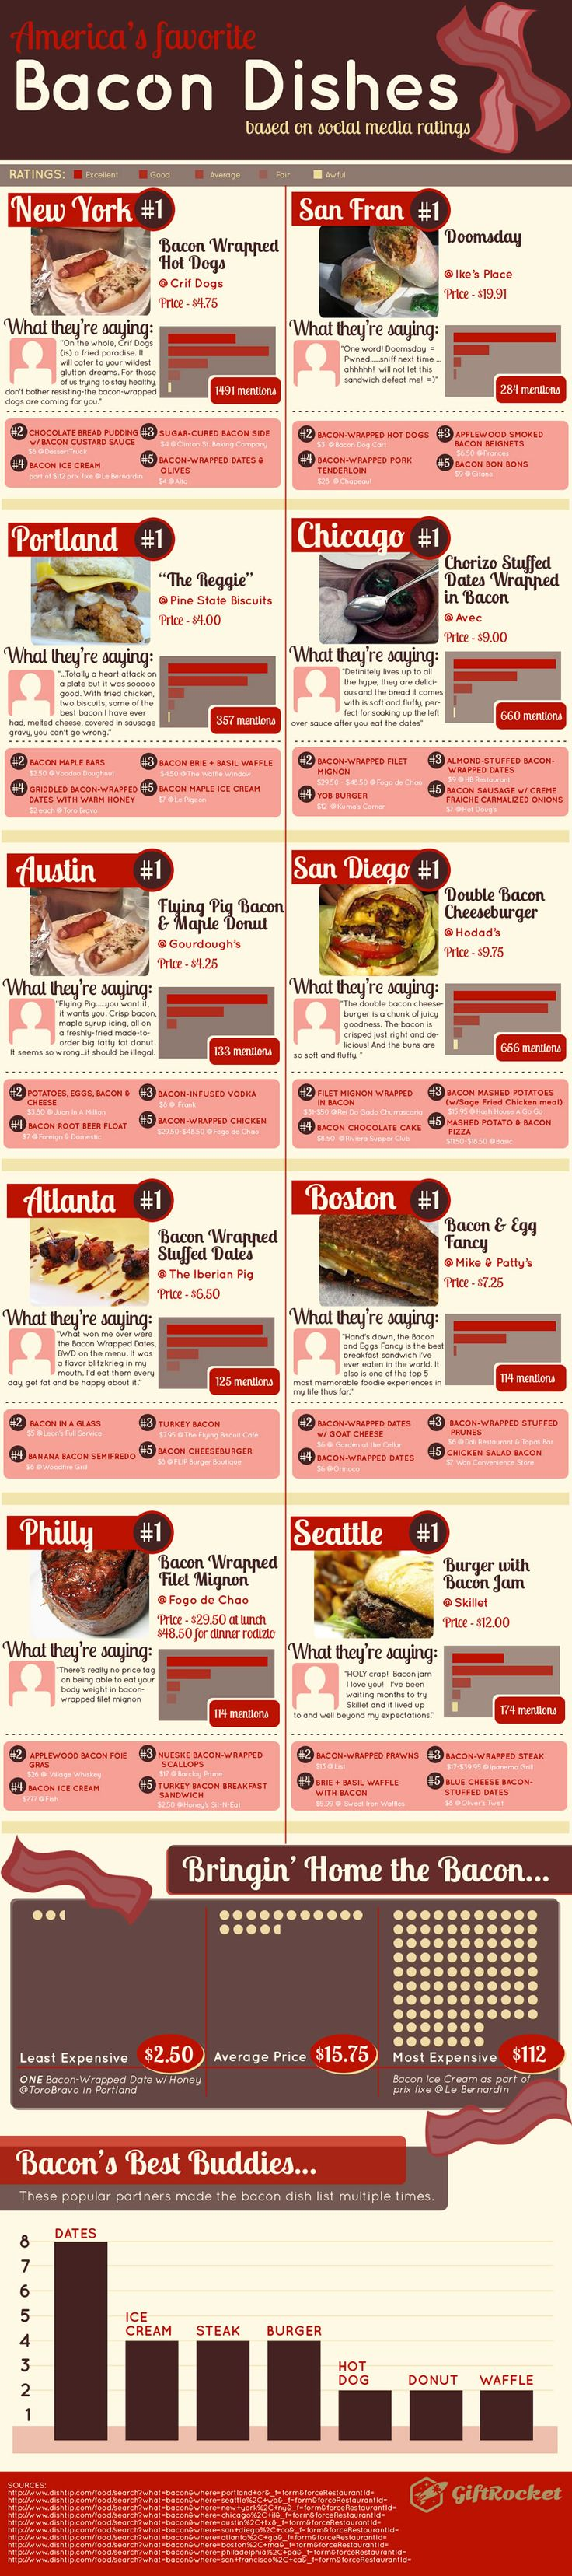 #INFOgraphic > United States of Bacon: Its not just that crispy, spicy and delicious gust that makes bacon Americas favorite snack, but plausibly its versatility in combinations with various ingredients that gives numerous options for cooking creativity. Stimulate your appetite with these 10 most cited bacon dishes on... > http://infographicsmania.com/united-states-of-bacon/